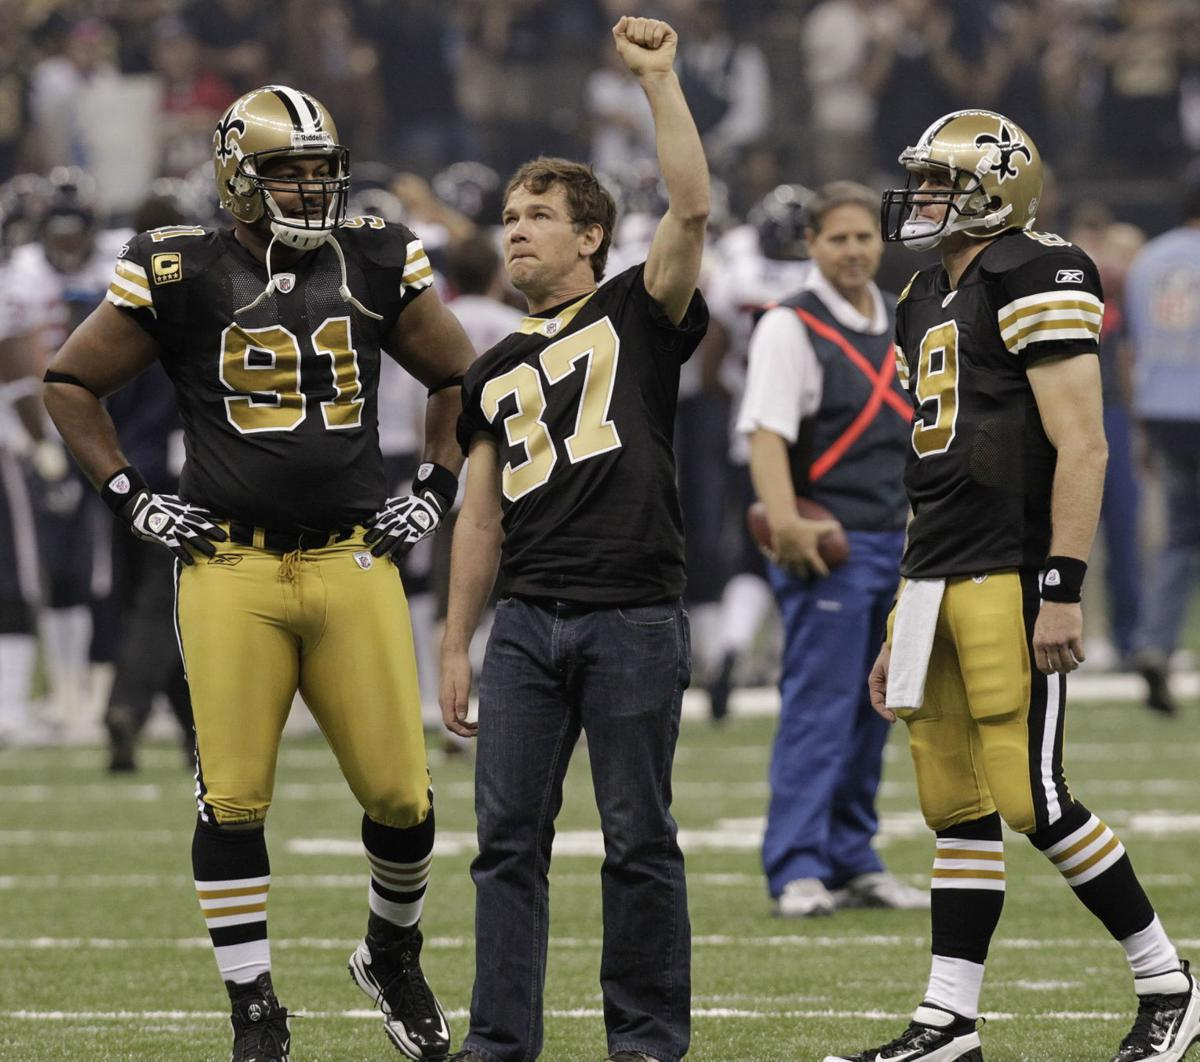 Steve Gleason to soon be another link between Saints, Loyola; Cam Jordan says he won't let D.E. challengers see field